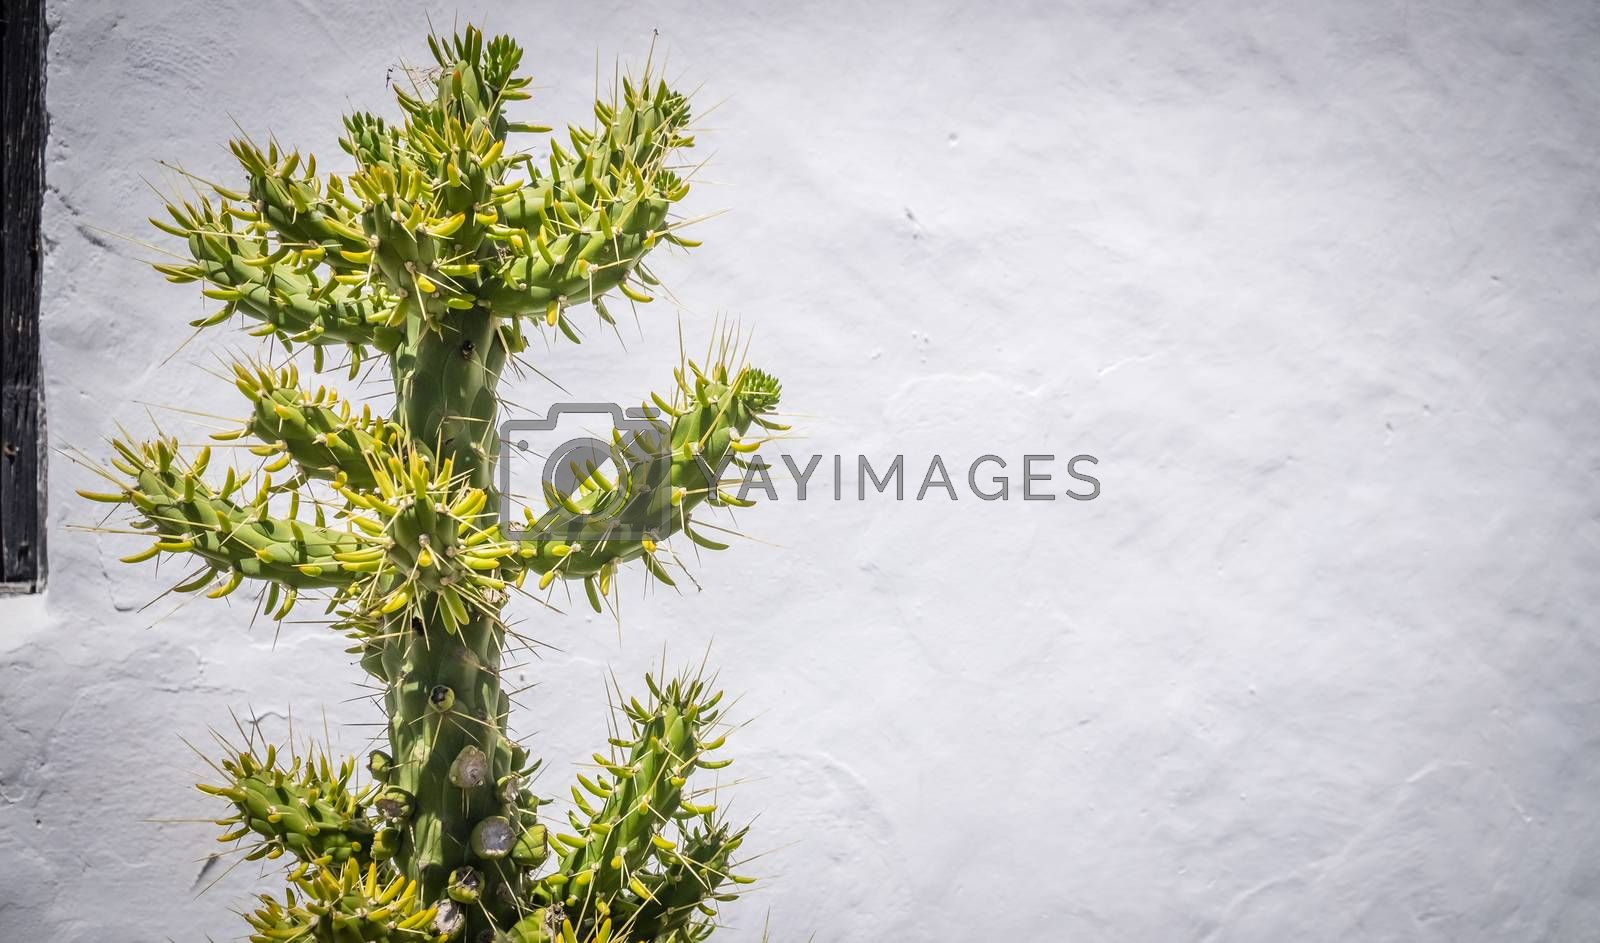 Large tree - like cactus photographed in Fuerteventura, Canary Islands, Spain